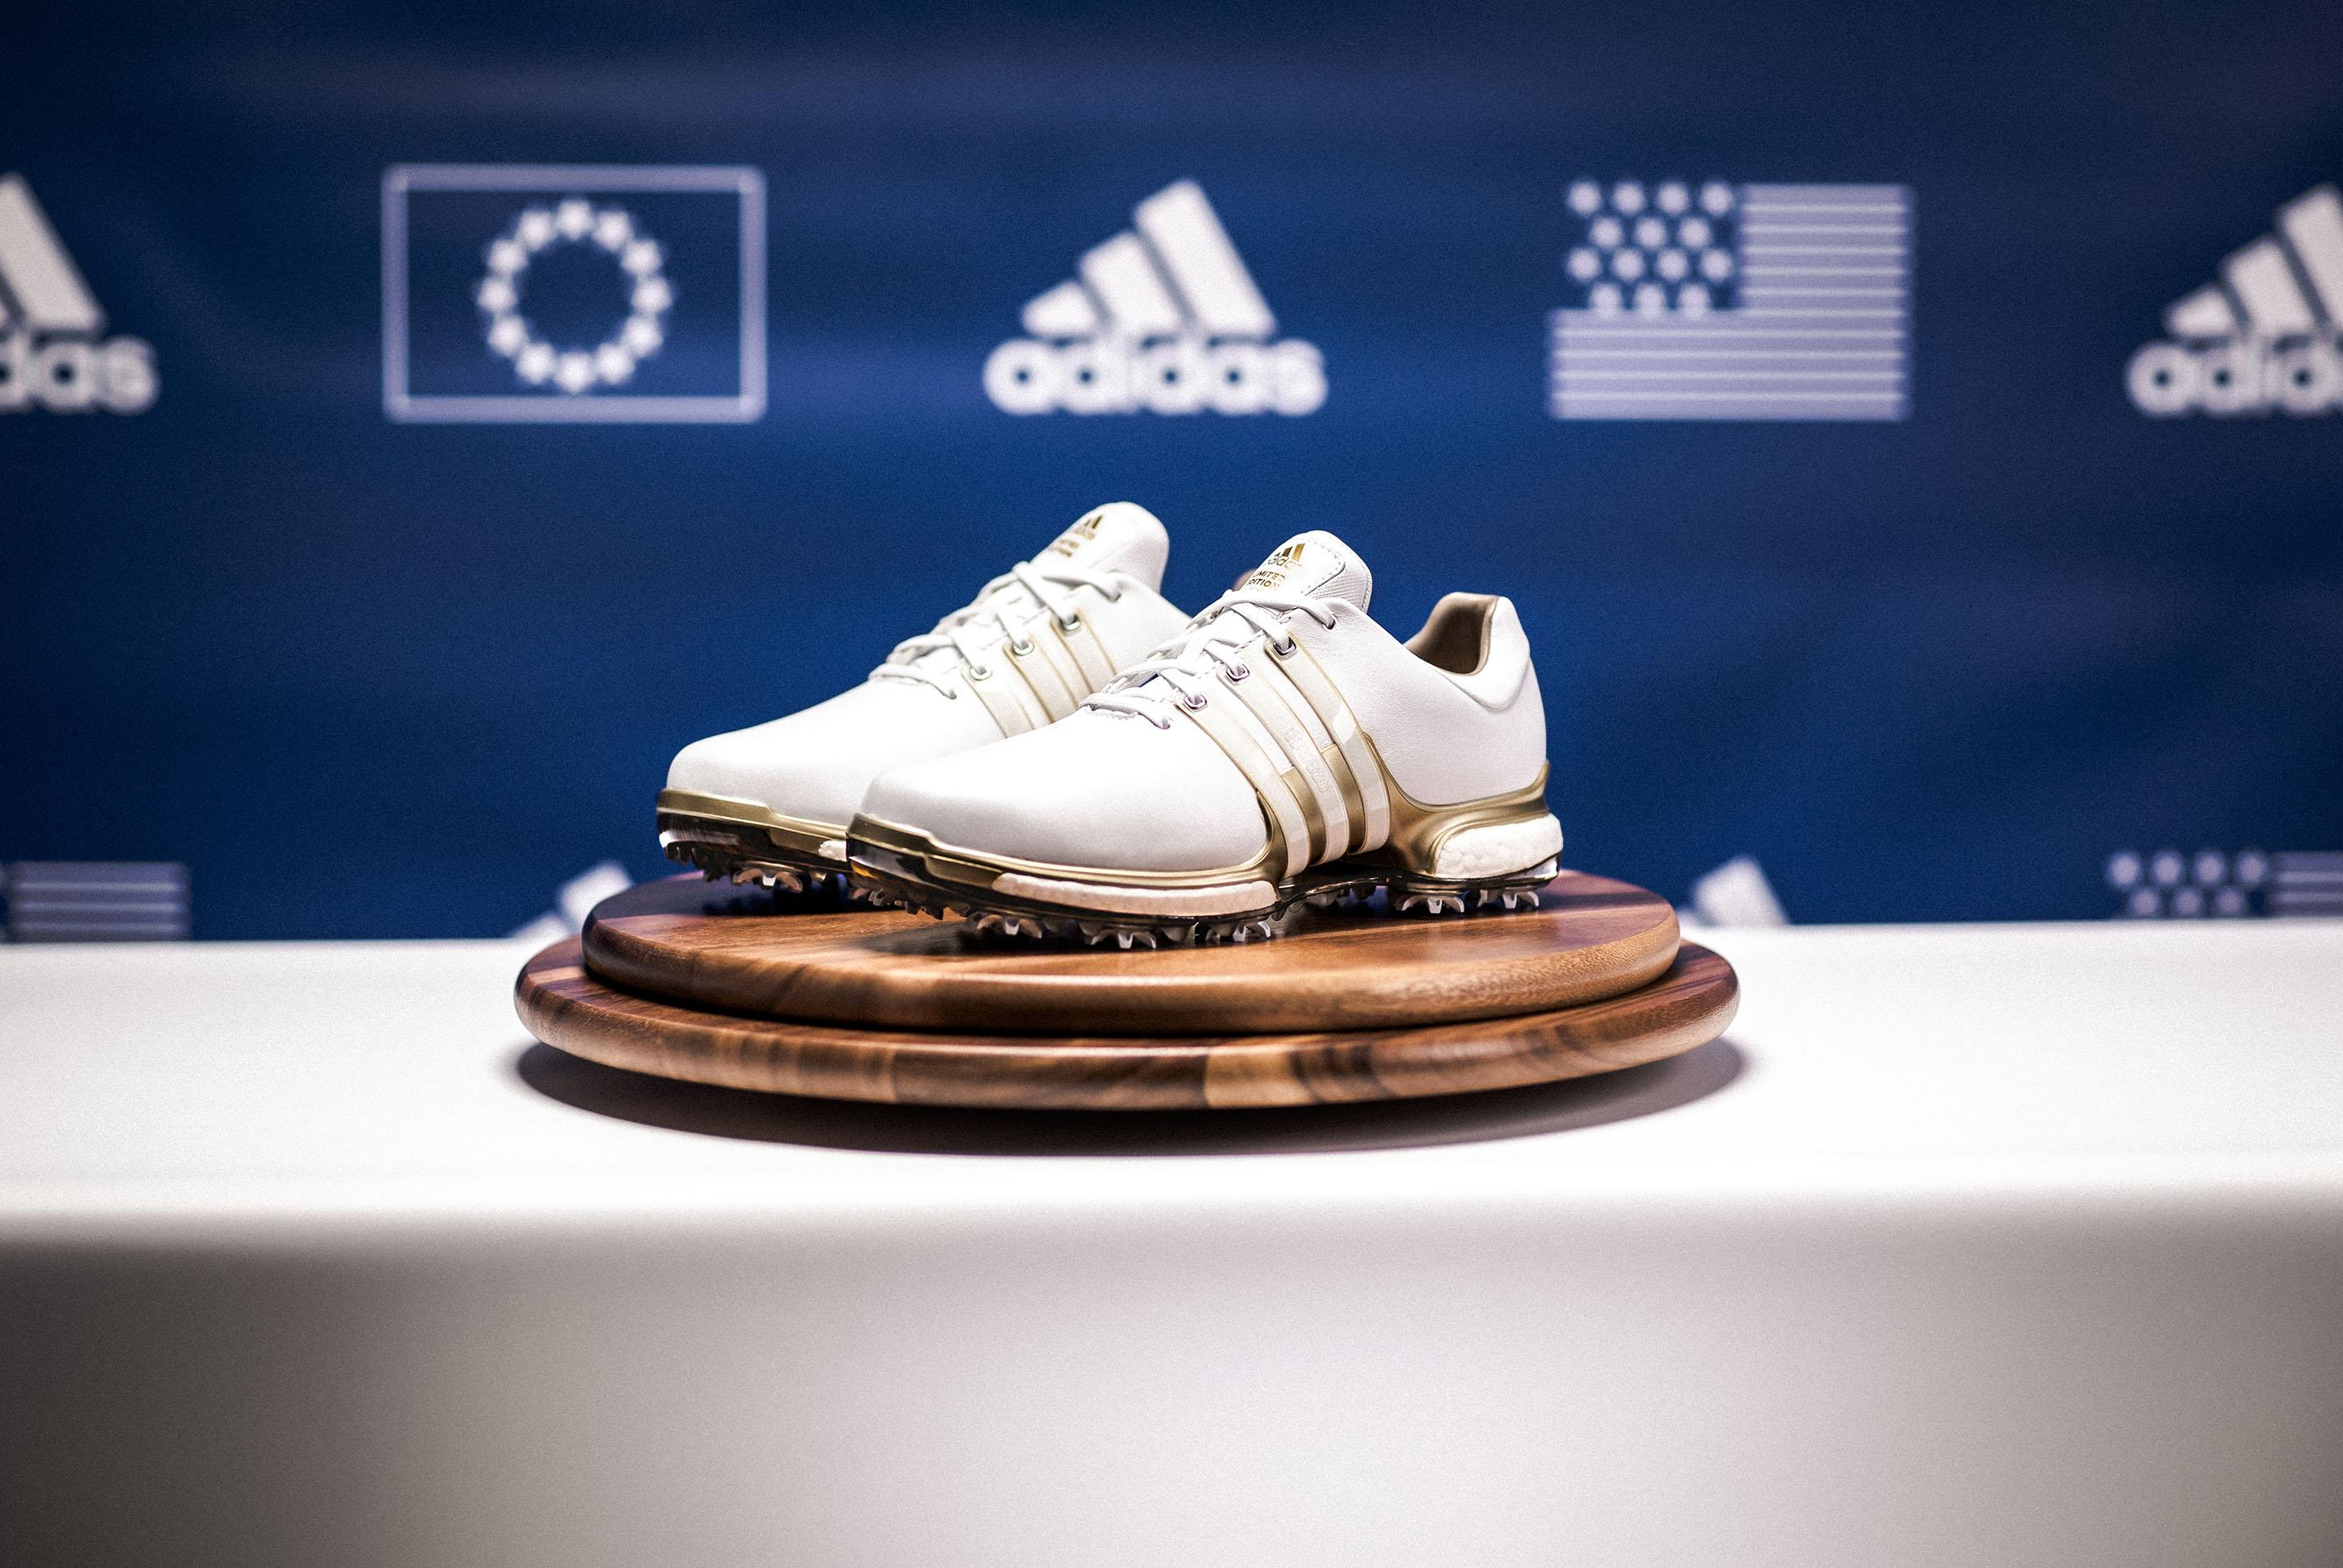 limited-edition TOUR360 golf shoe ahead